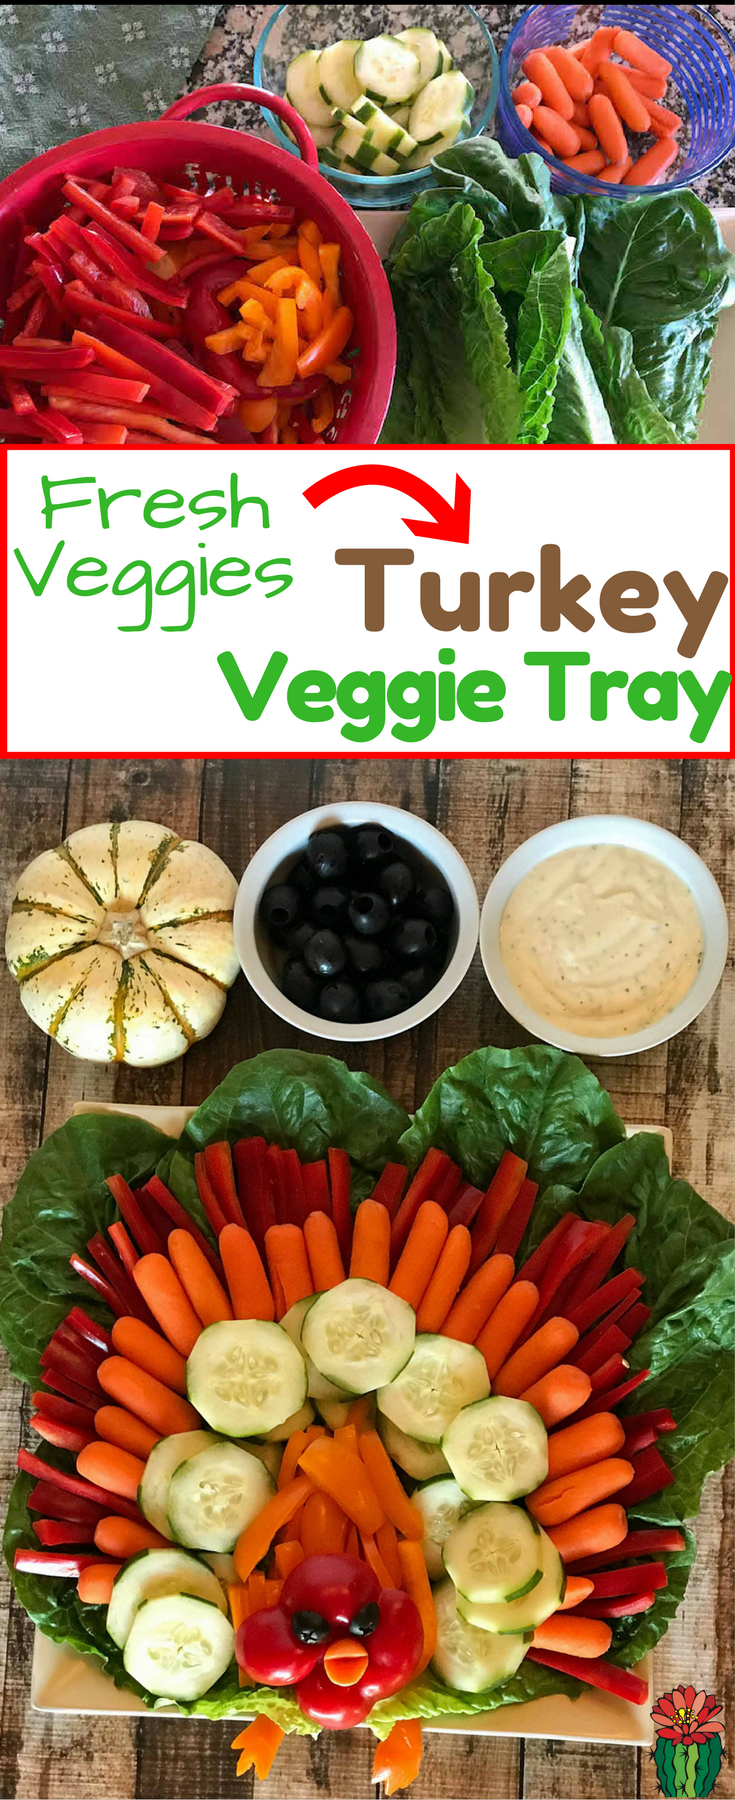 Don't miss this healthy Thanksgiving recipe, an easy Turkey Veggie Tray. Customize it with your family's favorite veggies and everyone will gobble it up